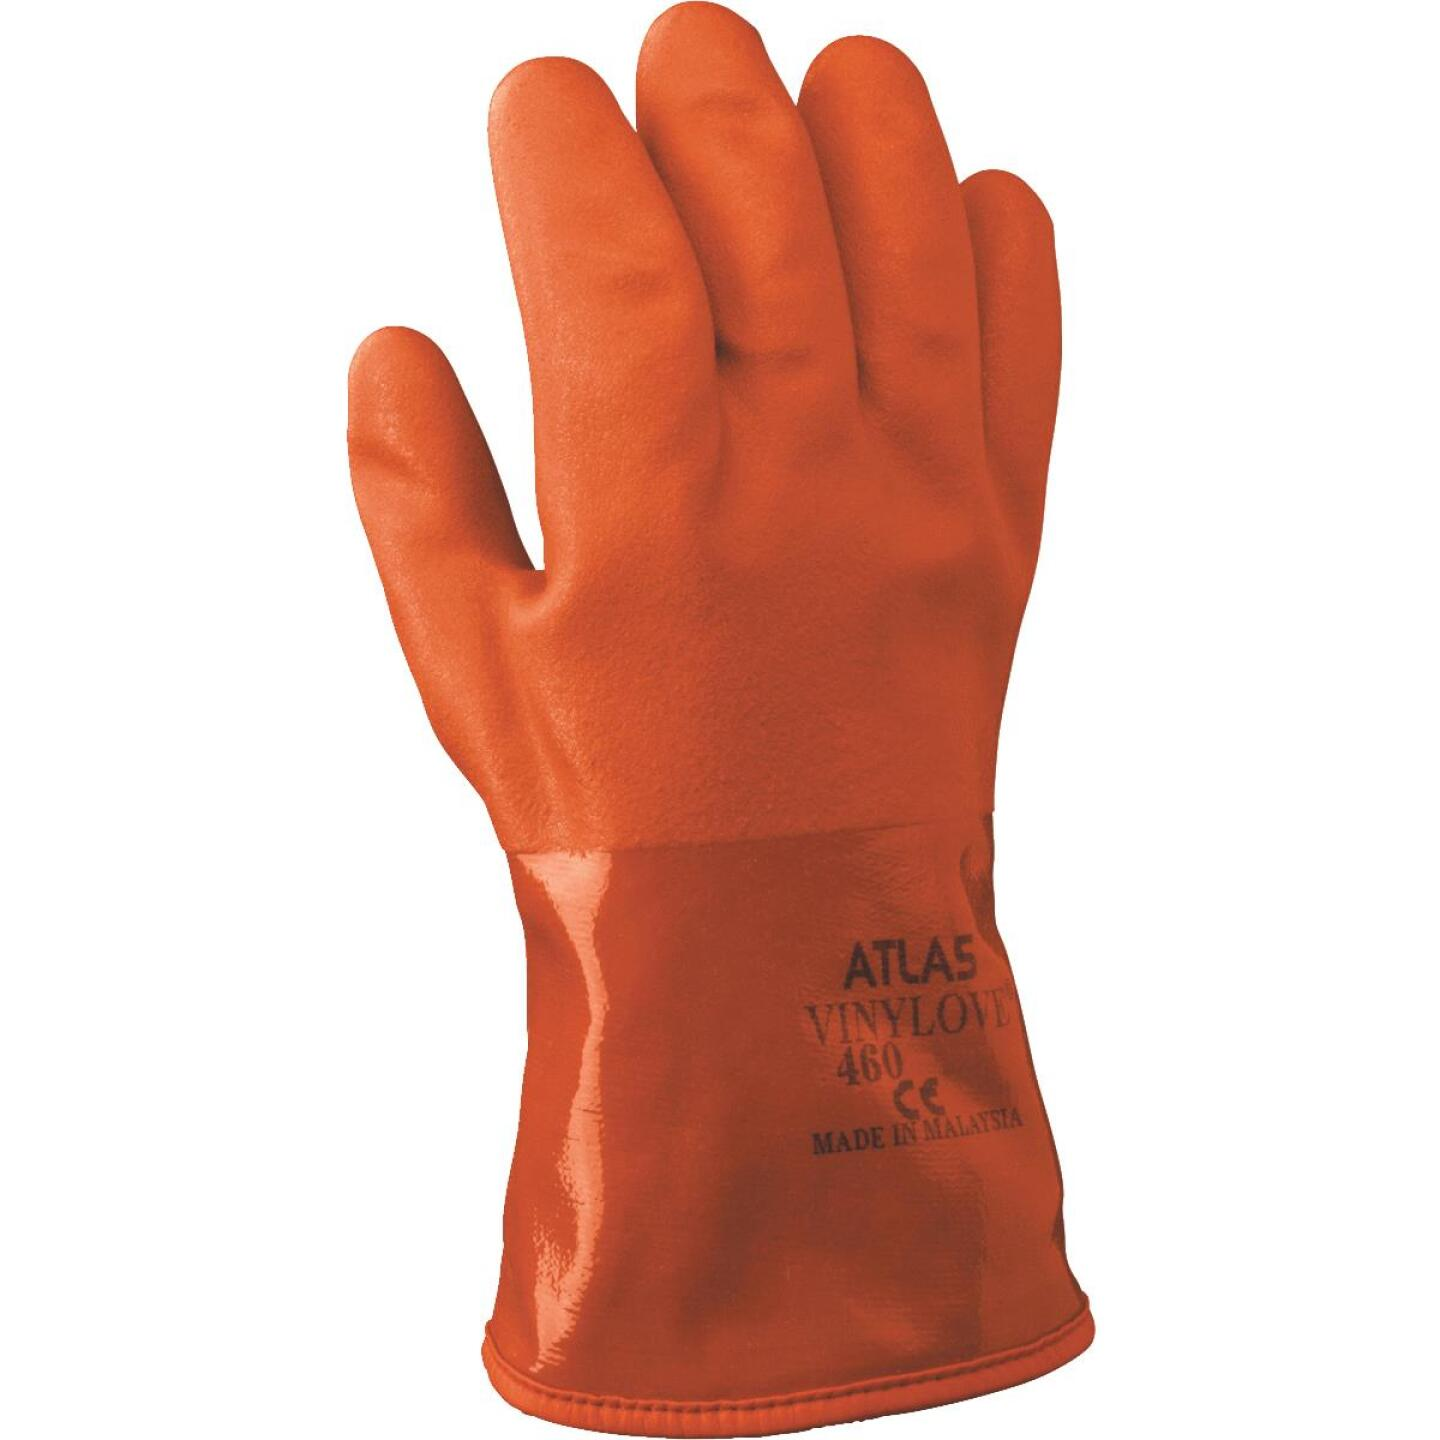 Atlas Men's XL Double-Dipped PVC Winter Work Glove Image 1